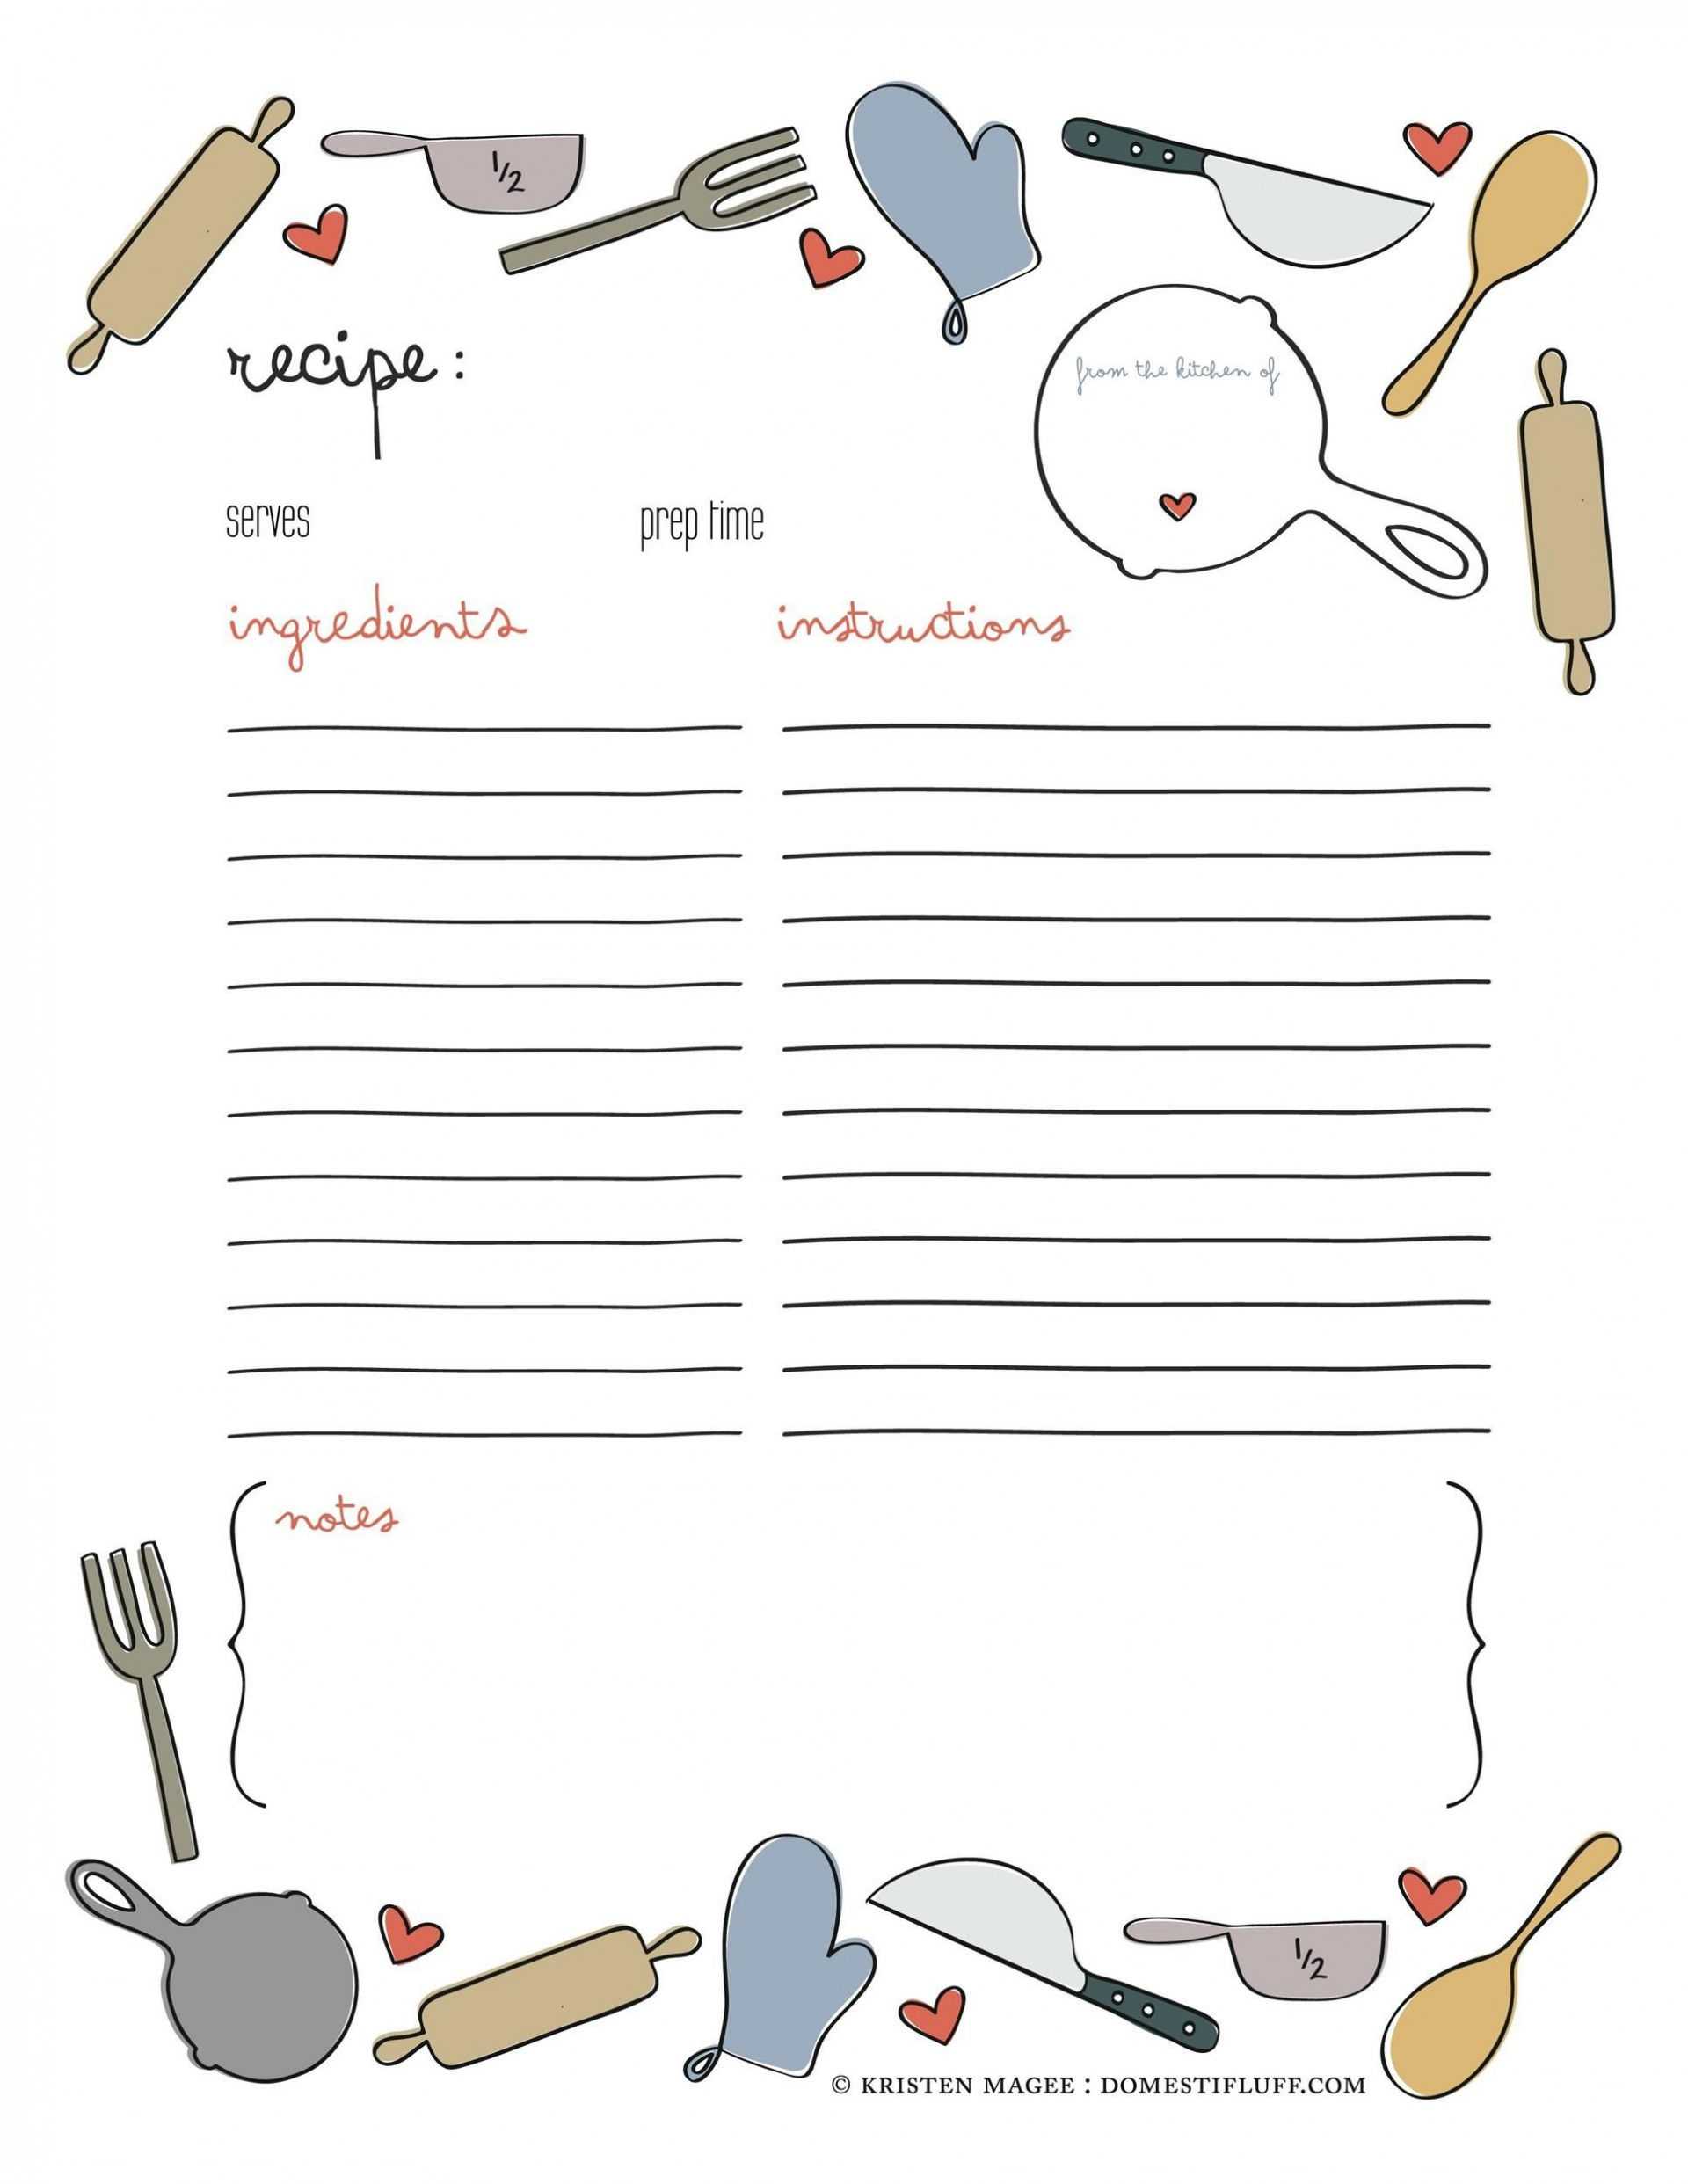 008 Remarkable Free Make Your Own Cookbook Template Download Photo 1920